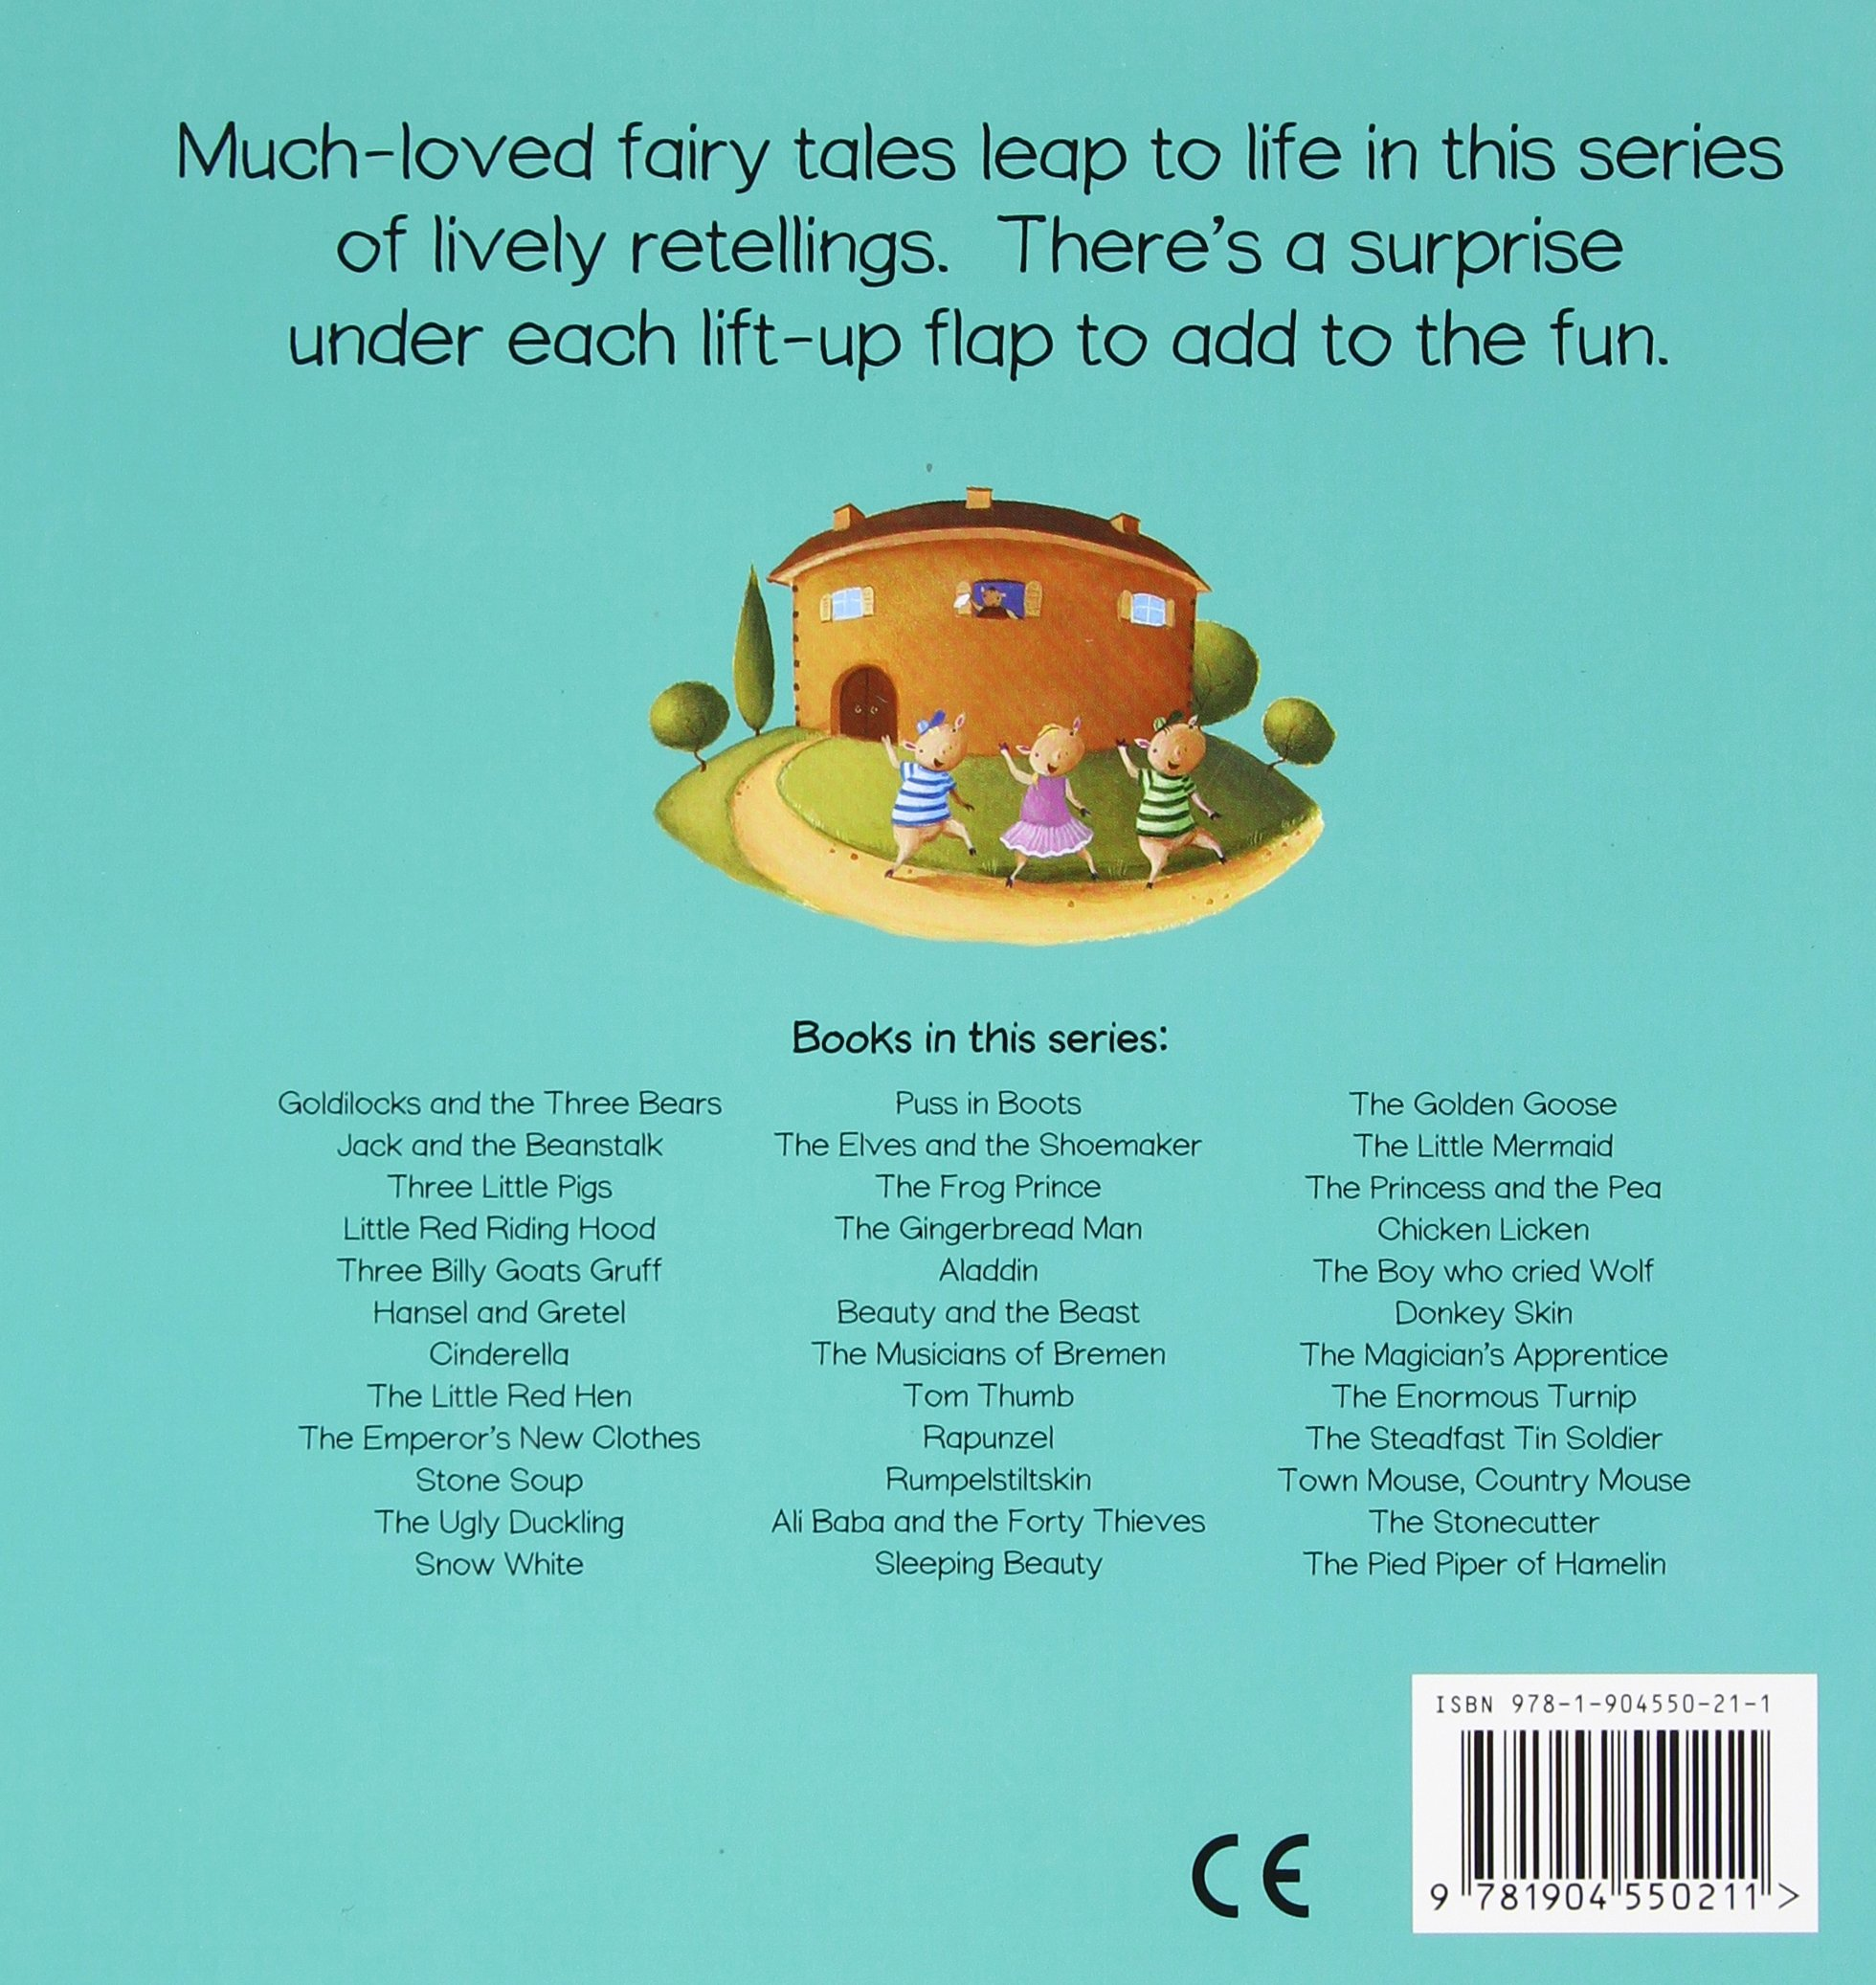 Three Little Pigs (flipup Fairy Tales): Richard Johnson: 9781904550211:  Amazon: Books